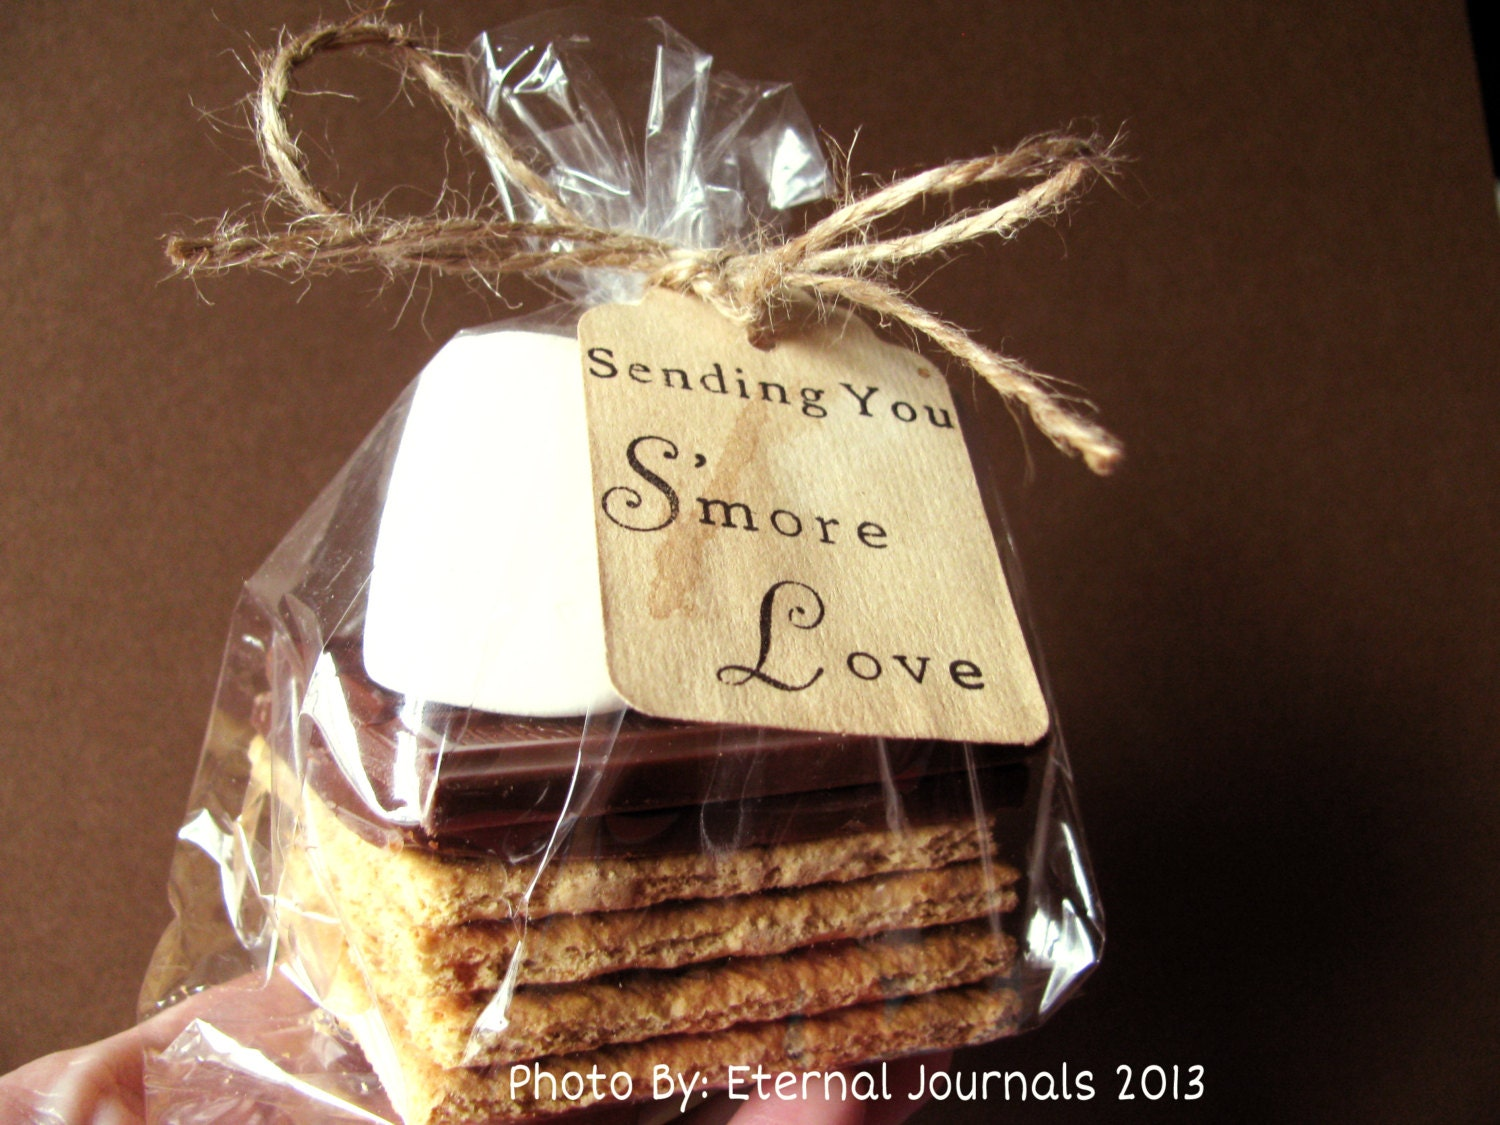 100 twine jute ties only for my sending you smore love favors ties 100 twine jute ties only for my sending you smore love favors ties only wedding favor do it yourself favor diy wedding favors solutioingenieria Choice Image